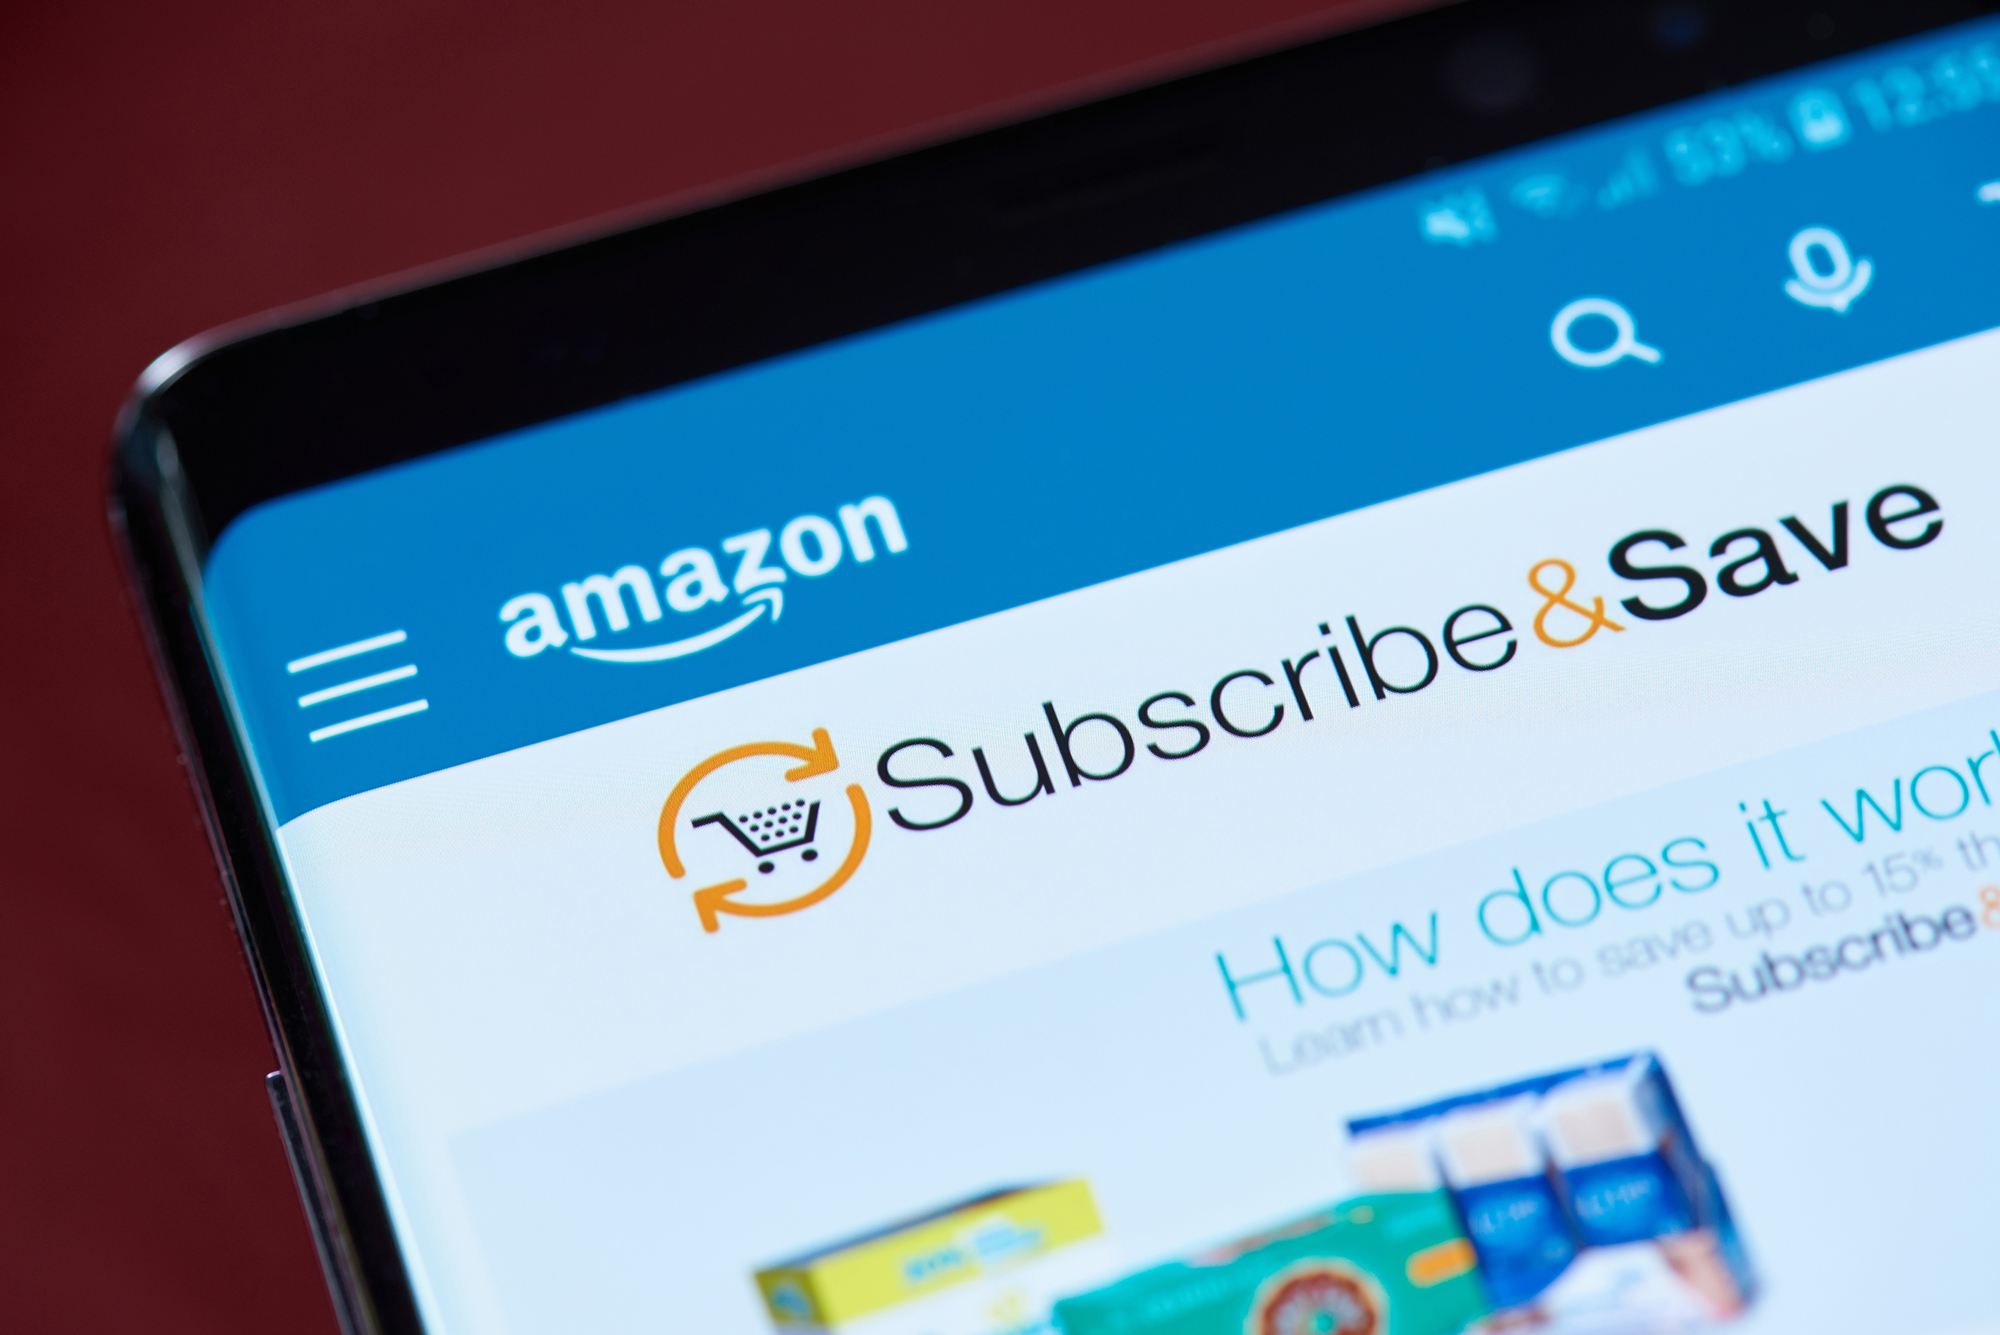 Amazon Subscribe & Save. (Image: PixieMe/Shutterstock)